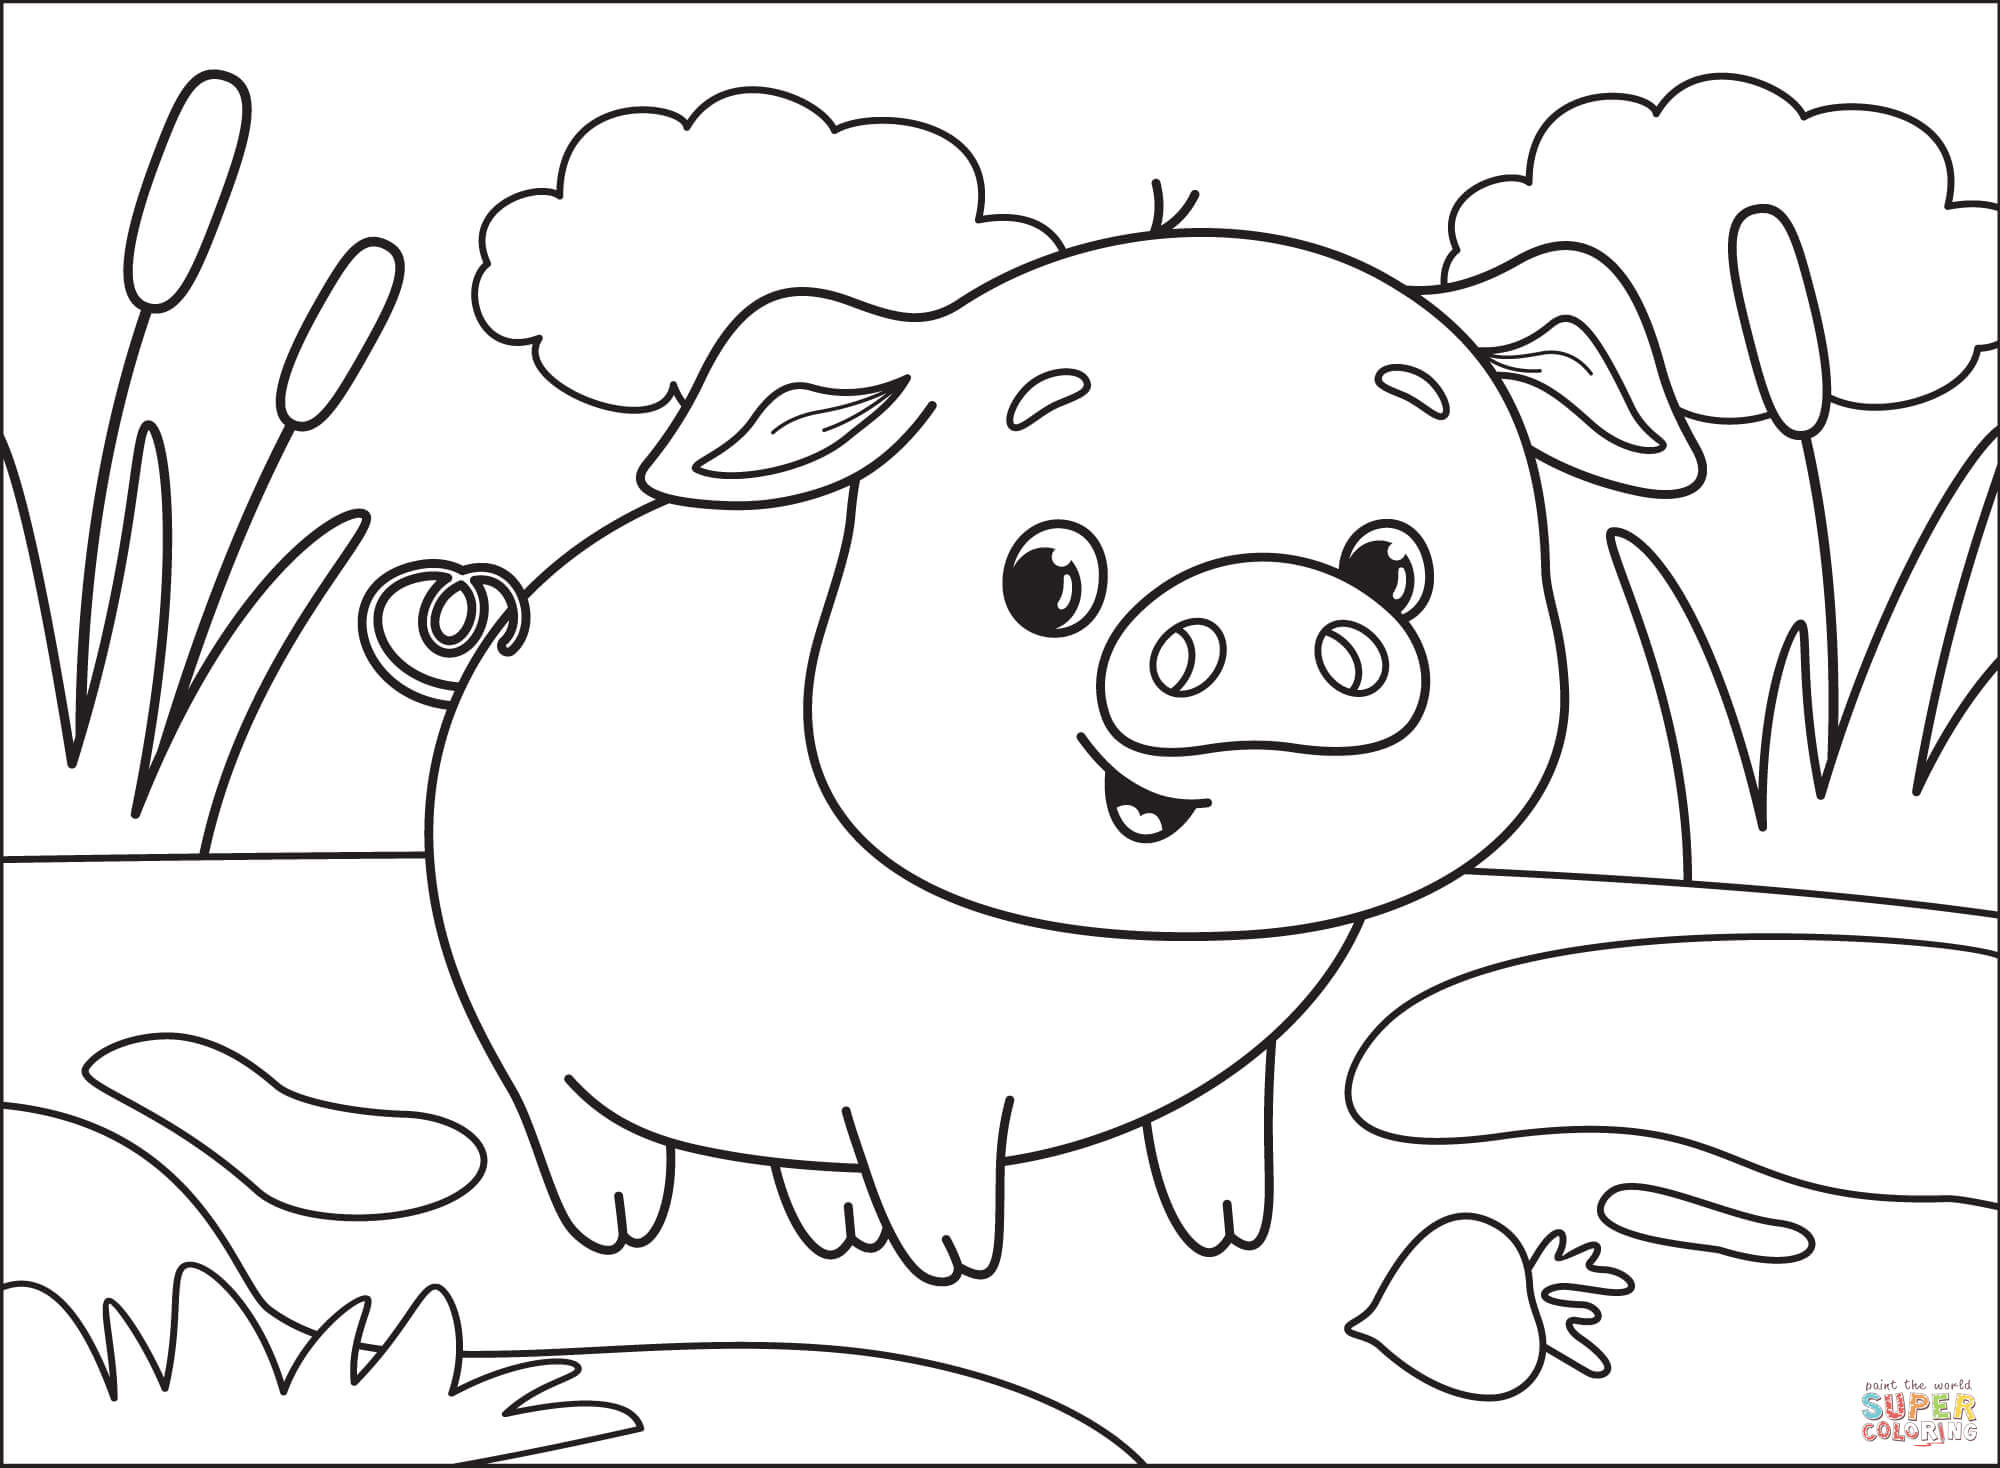 pig coloring free printable star and moob christmas cards to color elsa olaf professional coloring pages Coloring Page Pig